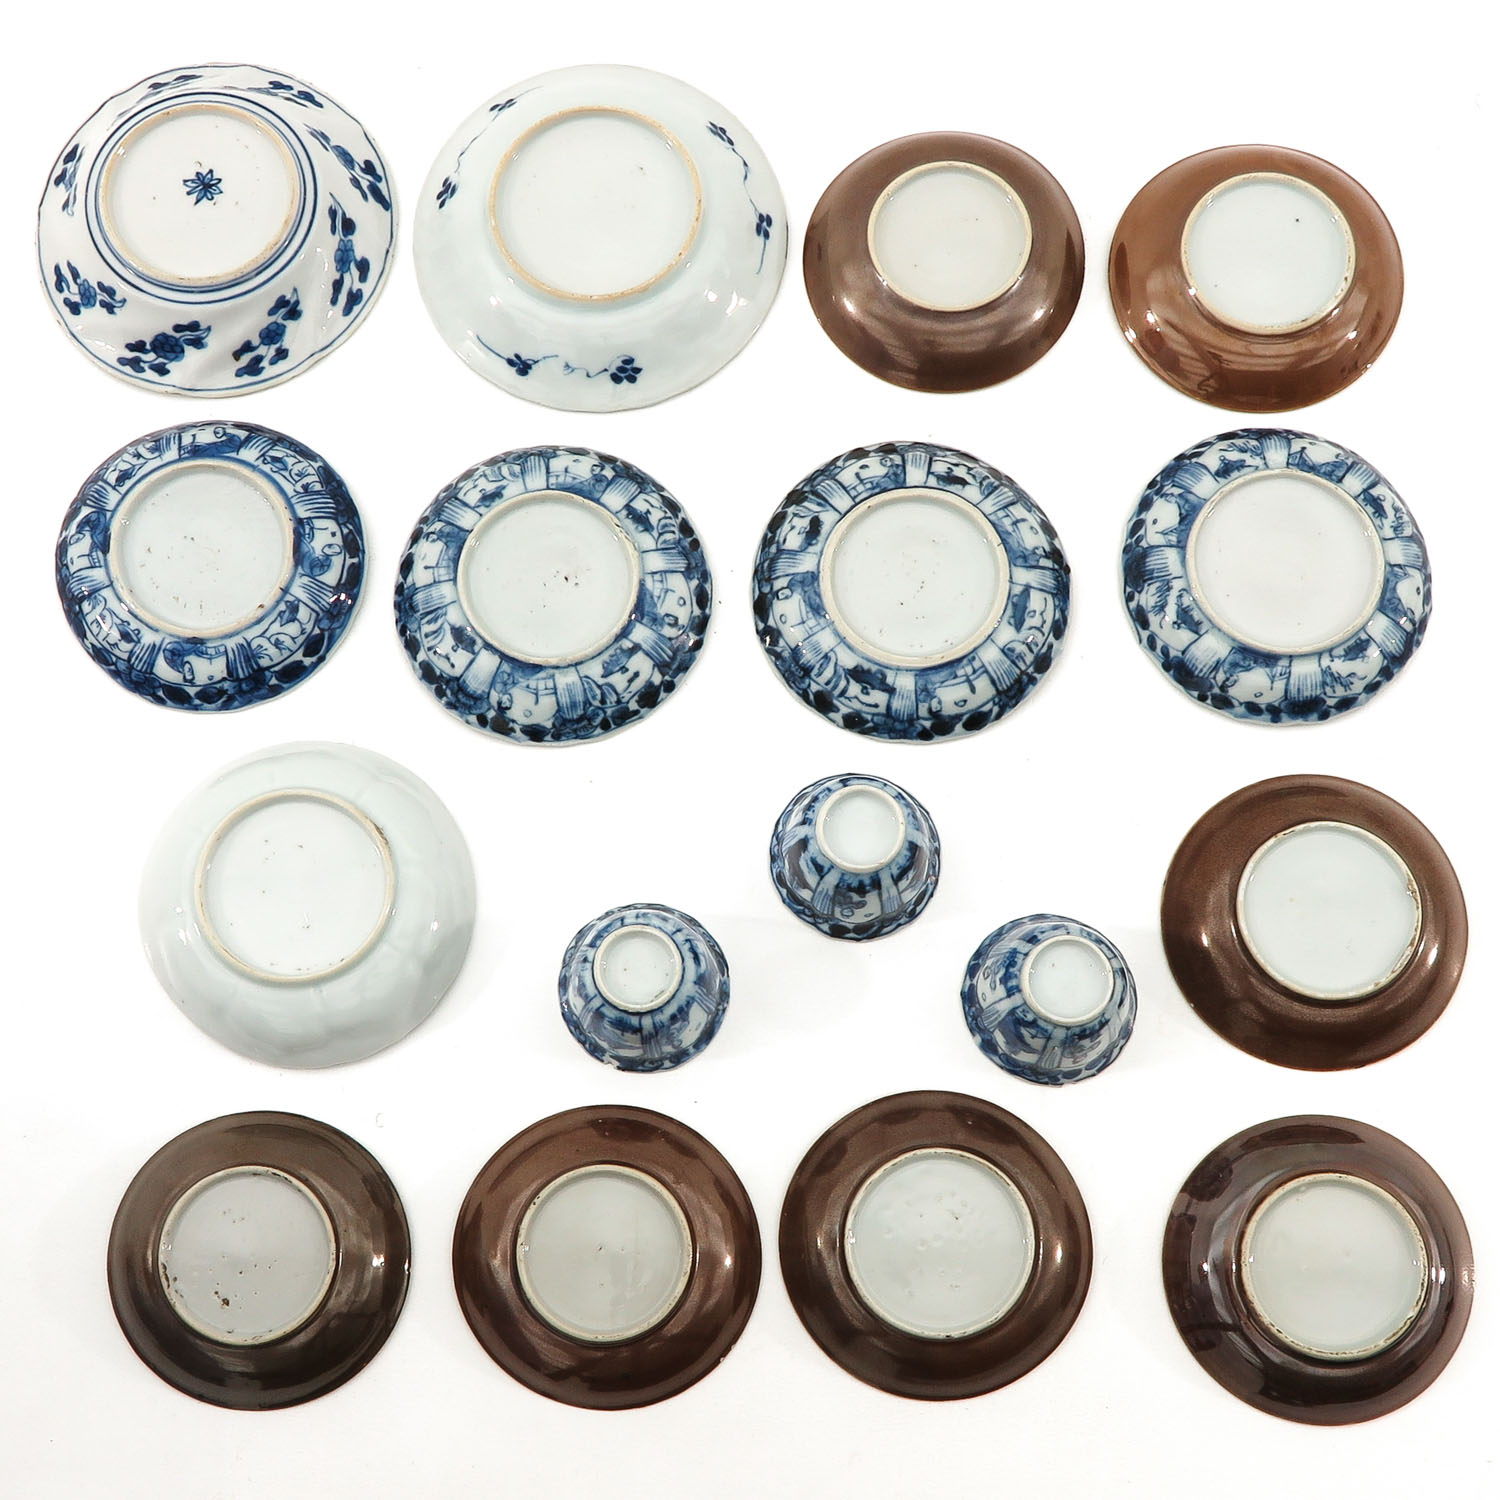 A Collection of Cups and Saucers - Image 2 of 4